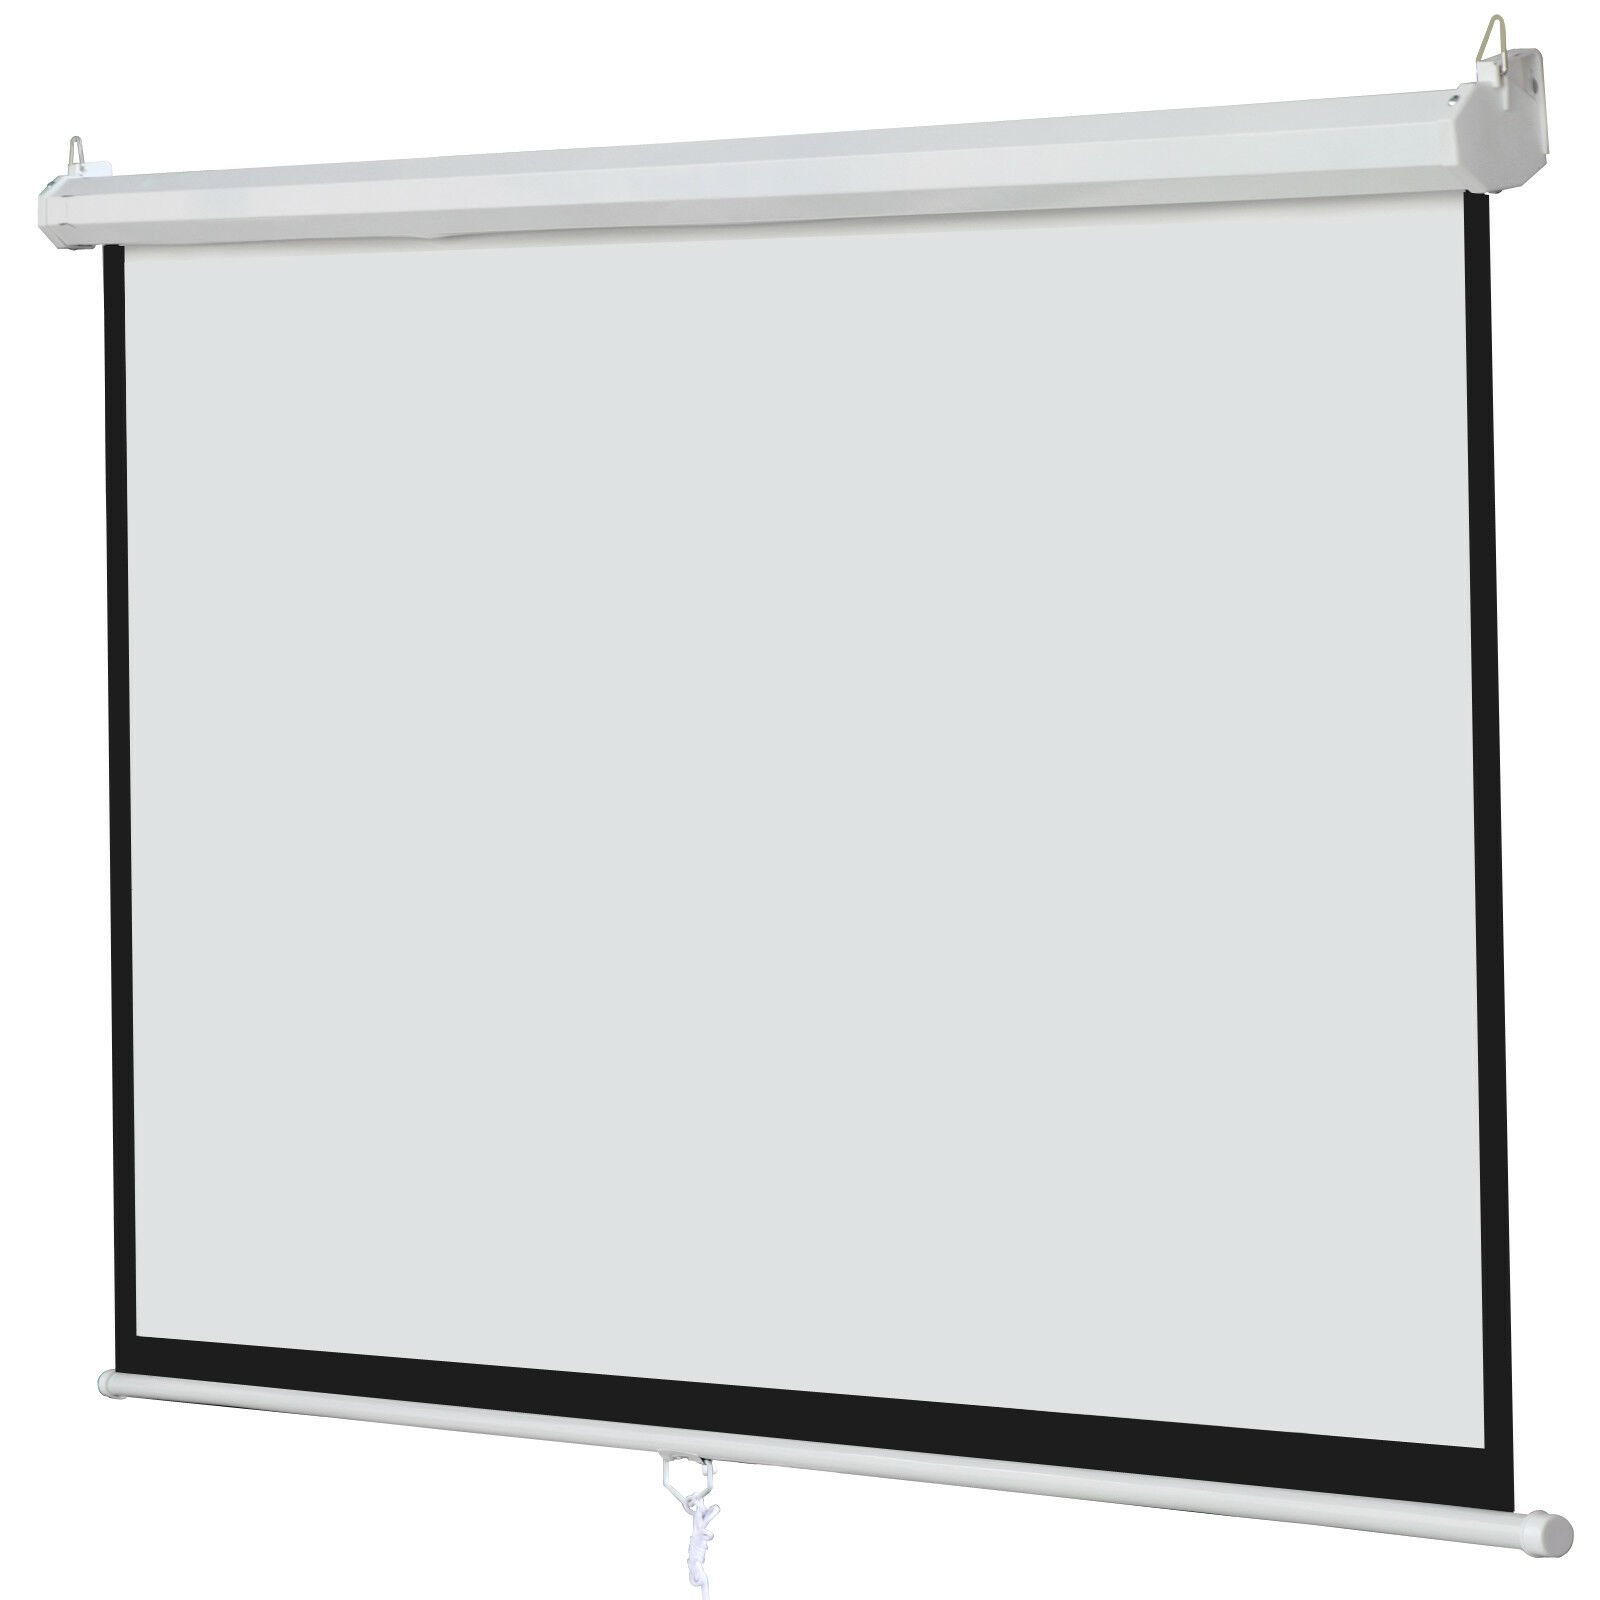 100 Inch 16:9 Manual Pull Down Projector Projection Screen Home Theater Movie Consumer Electronics